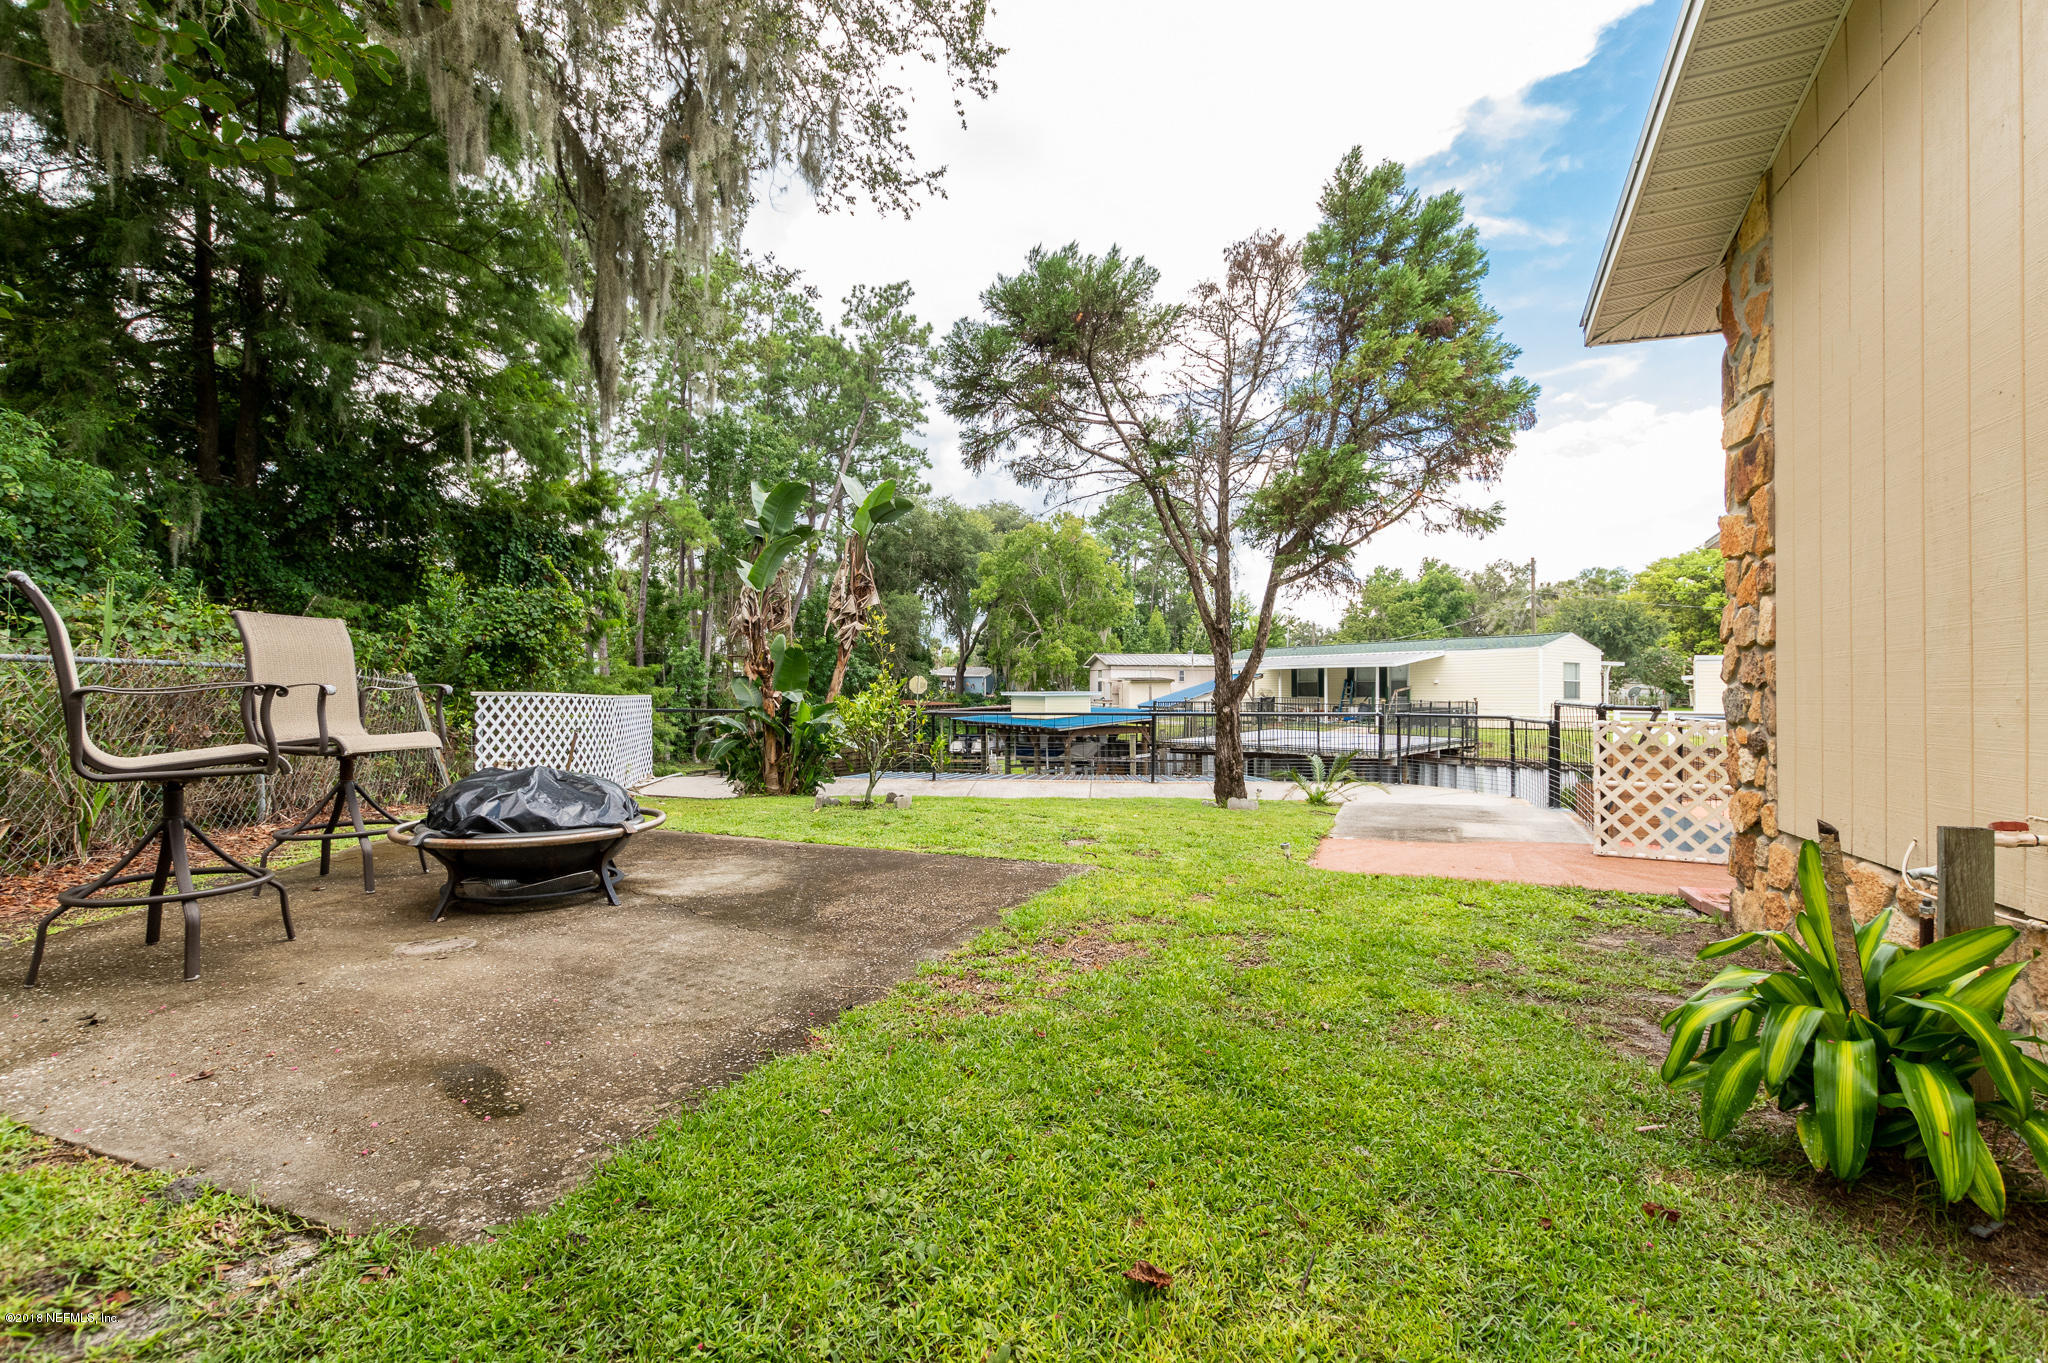 115 SHADY, SATSUMA, FLORIDA 32189, 3 Bedrooms Bedrooms, ,2 BathroomsBathrooms,Residential - single family,For sale,SHADY,949222